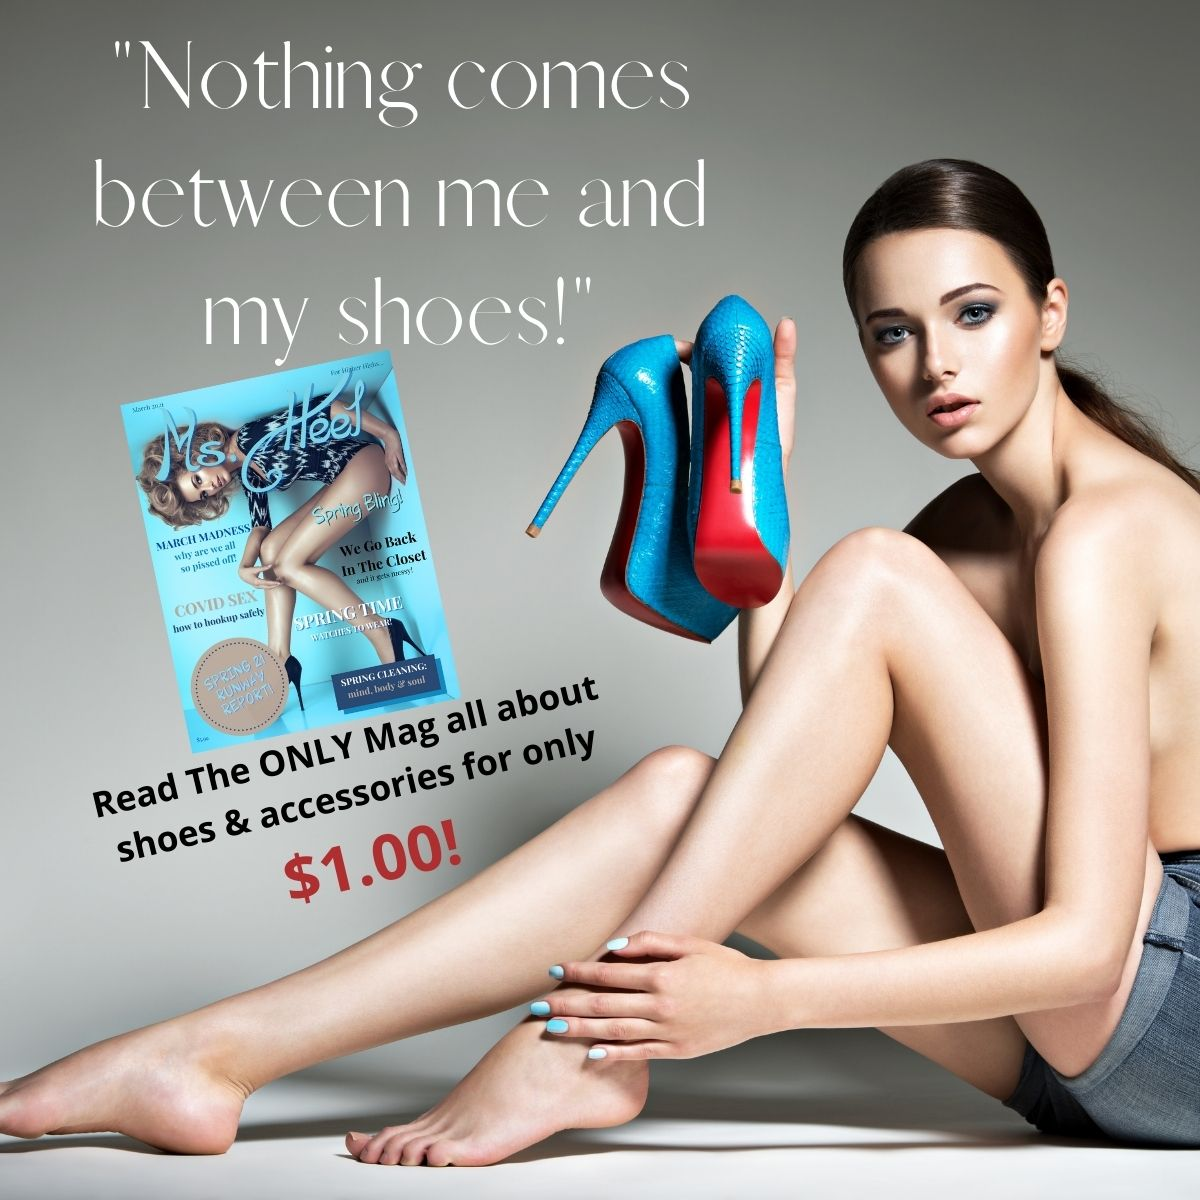 Ms. Heel Magazine--The ONLY mag all about shoes and accessories